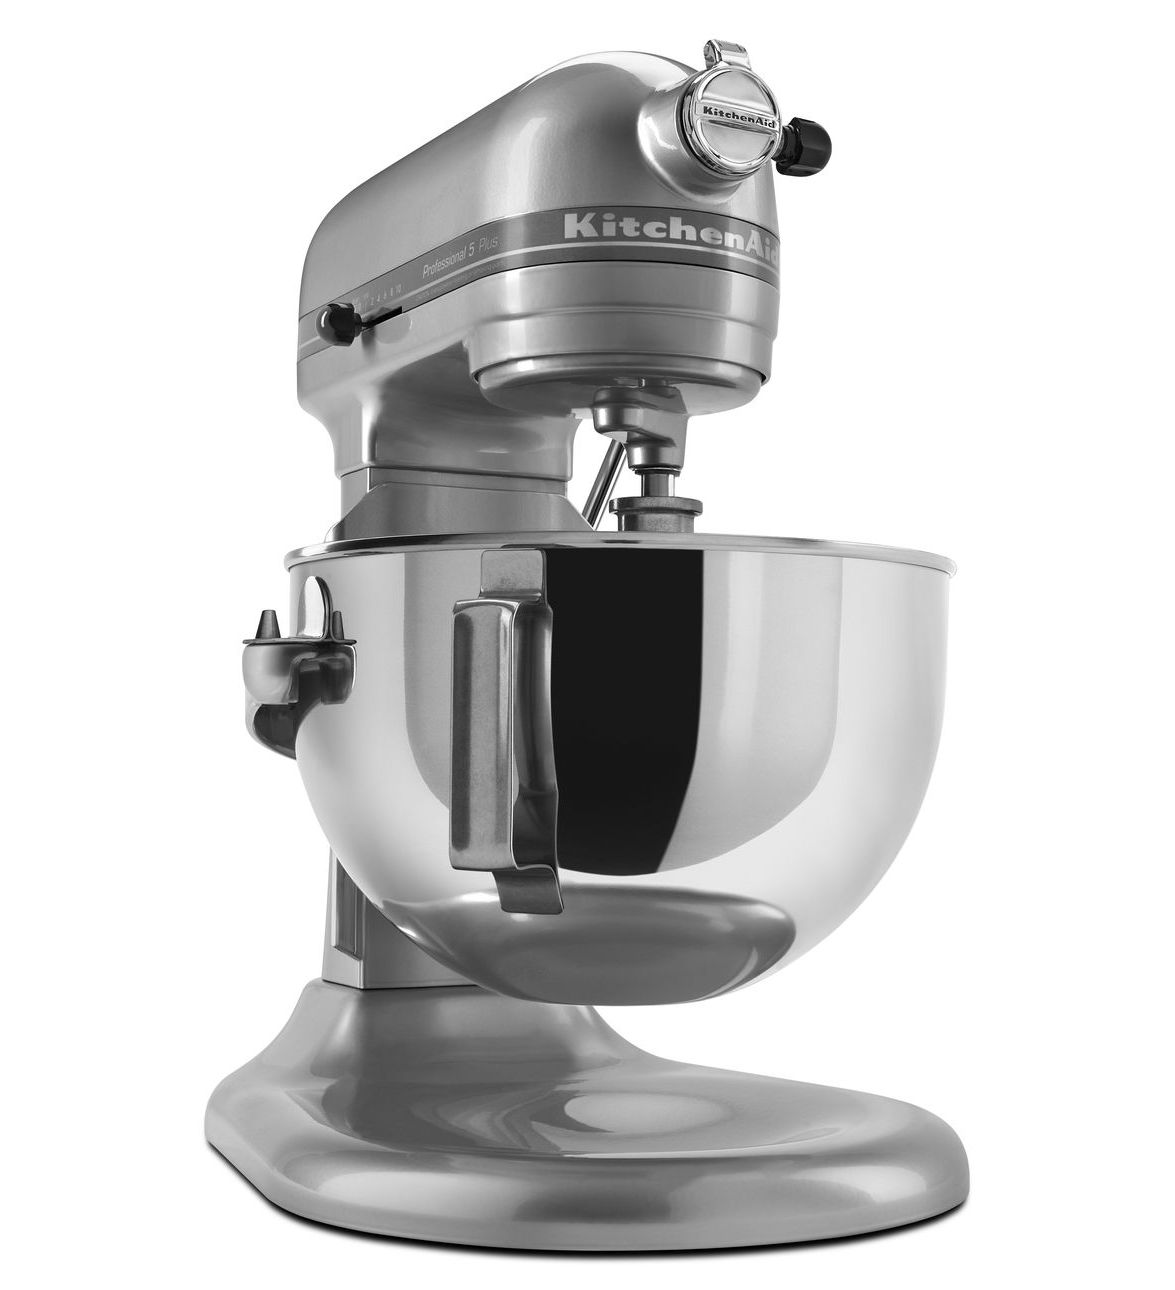 KitchenAid® Refurbished Professional 5™ Plus Series Bowl Lift Stand on weber professional, cuisinart professional, bosch professional, five star professional, bertazzoni professional, ninja master prep professional, frigidaire professional, sunbeam products, philips sonicare professional, black and decker professional, meyer corporation, whirlpool corporation, tassimo professional, pyrex professional, thermador professional, shark professional, hamilton beach brands, nescafe professional, foodsaver professional, craftsman professional, kenwood chef, global professional, amana corporation, nestle professional, kenwood limited, microsoft professional, revlon professional,